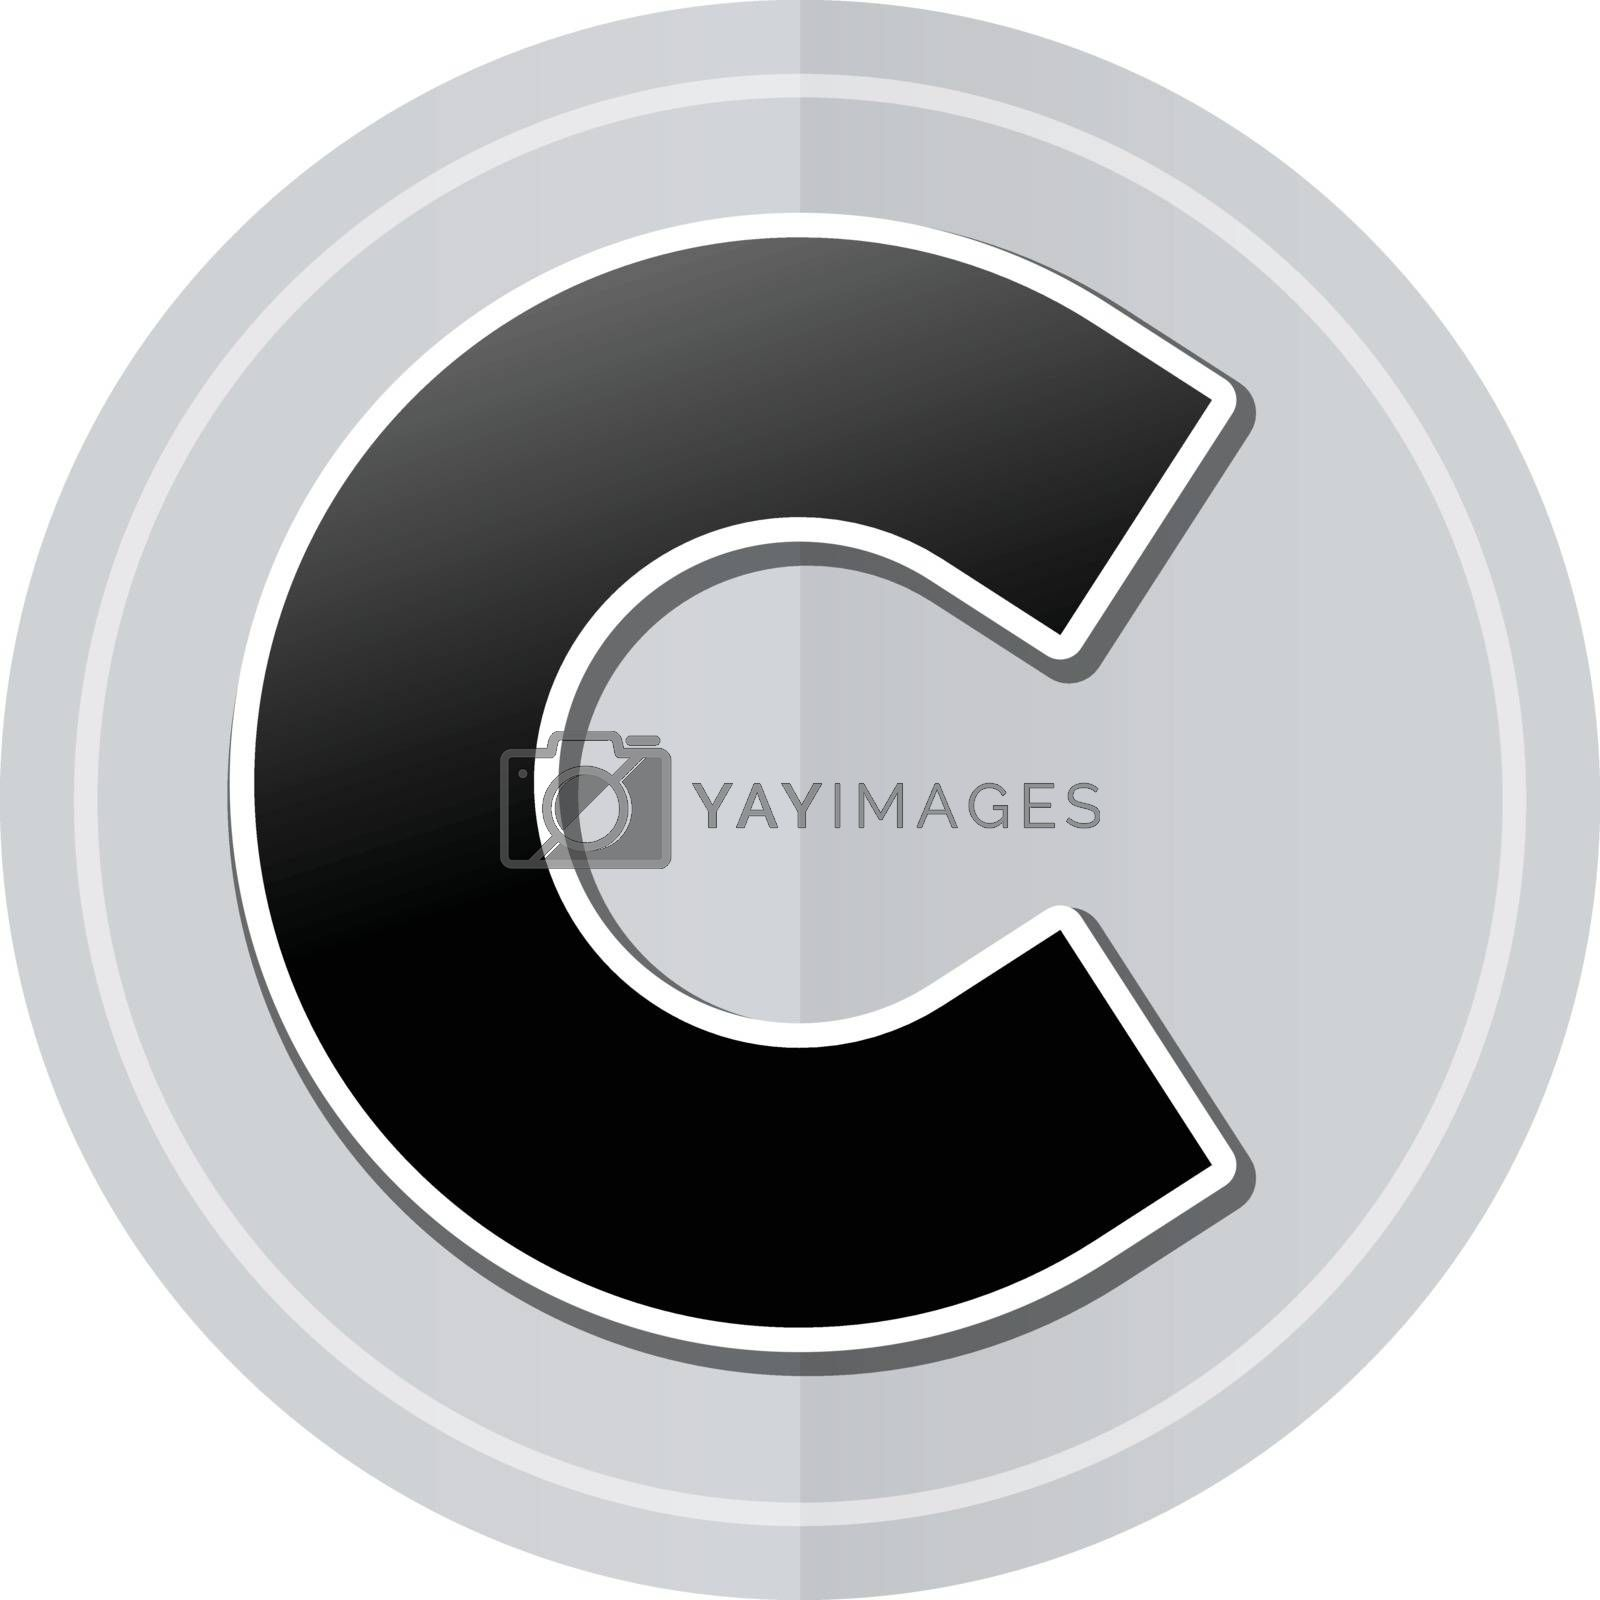 Illustration of copyright sticker icon simple design